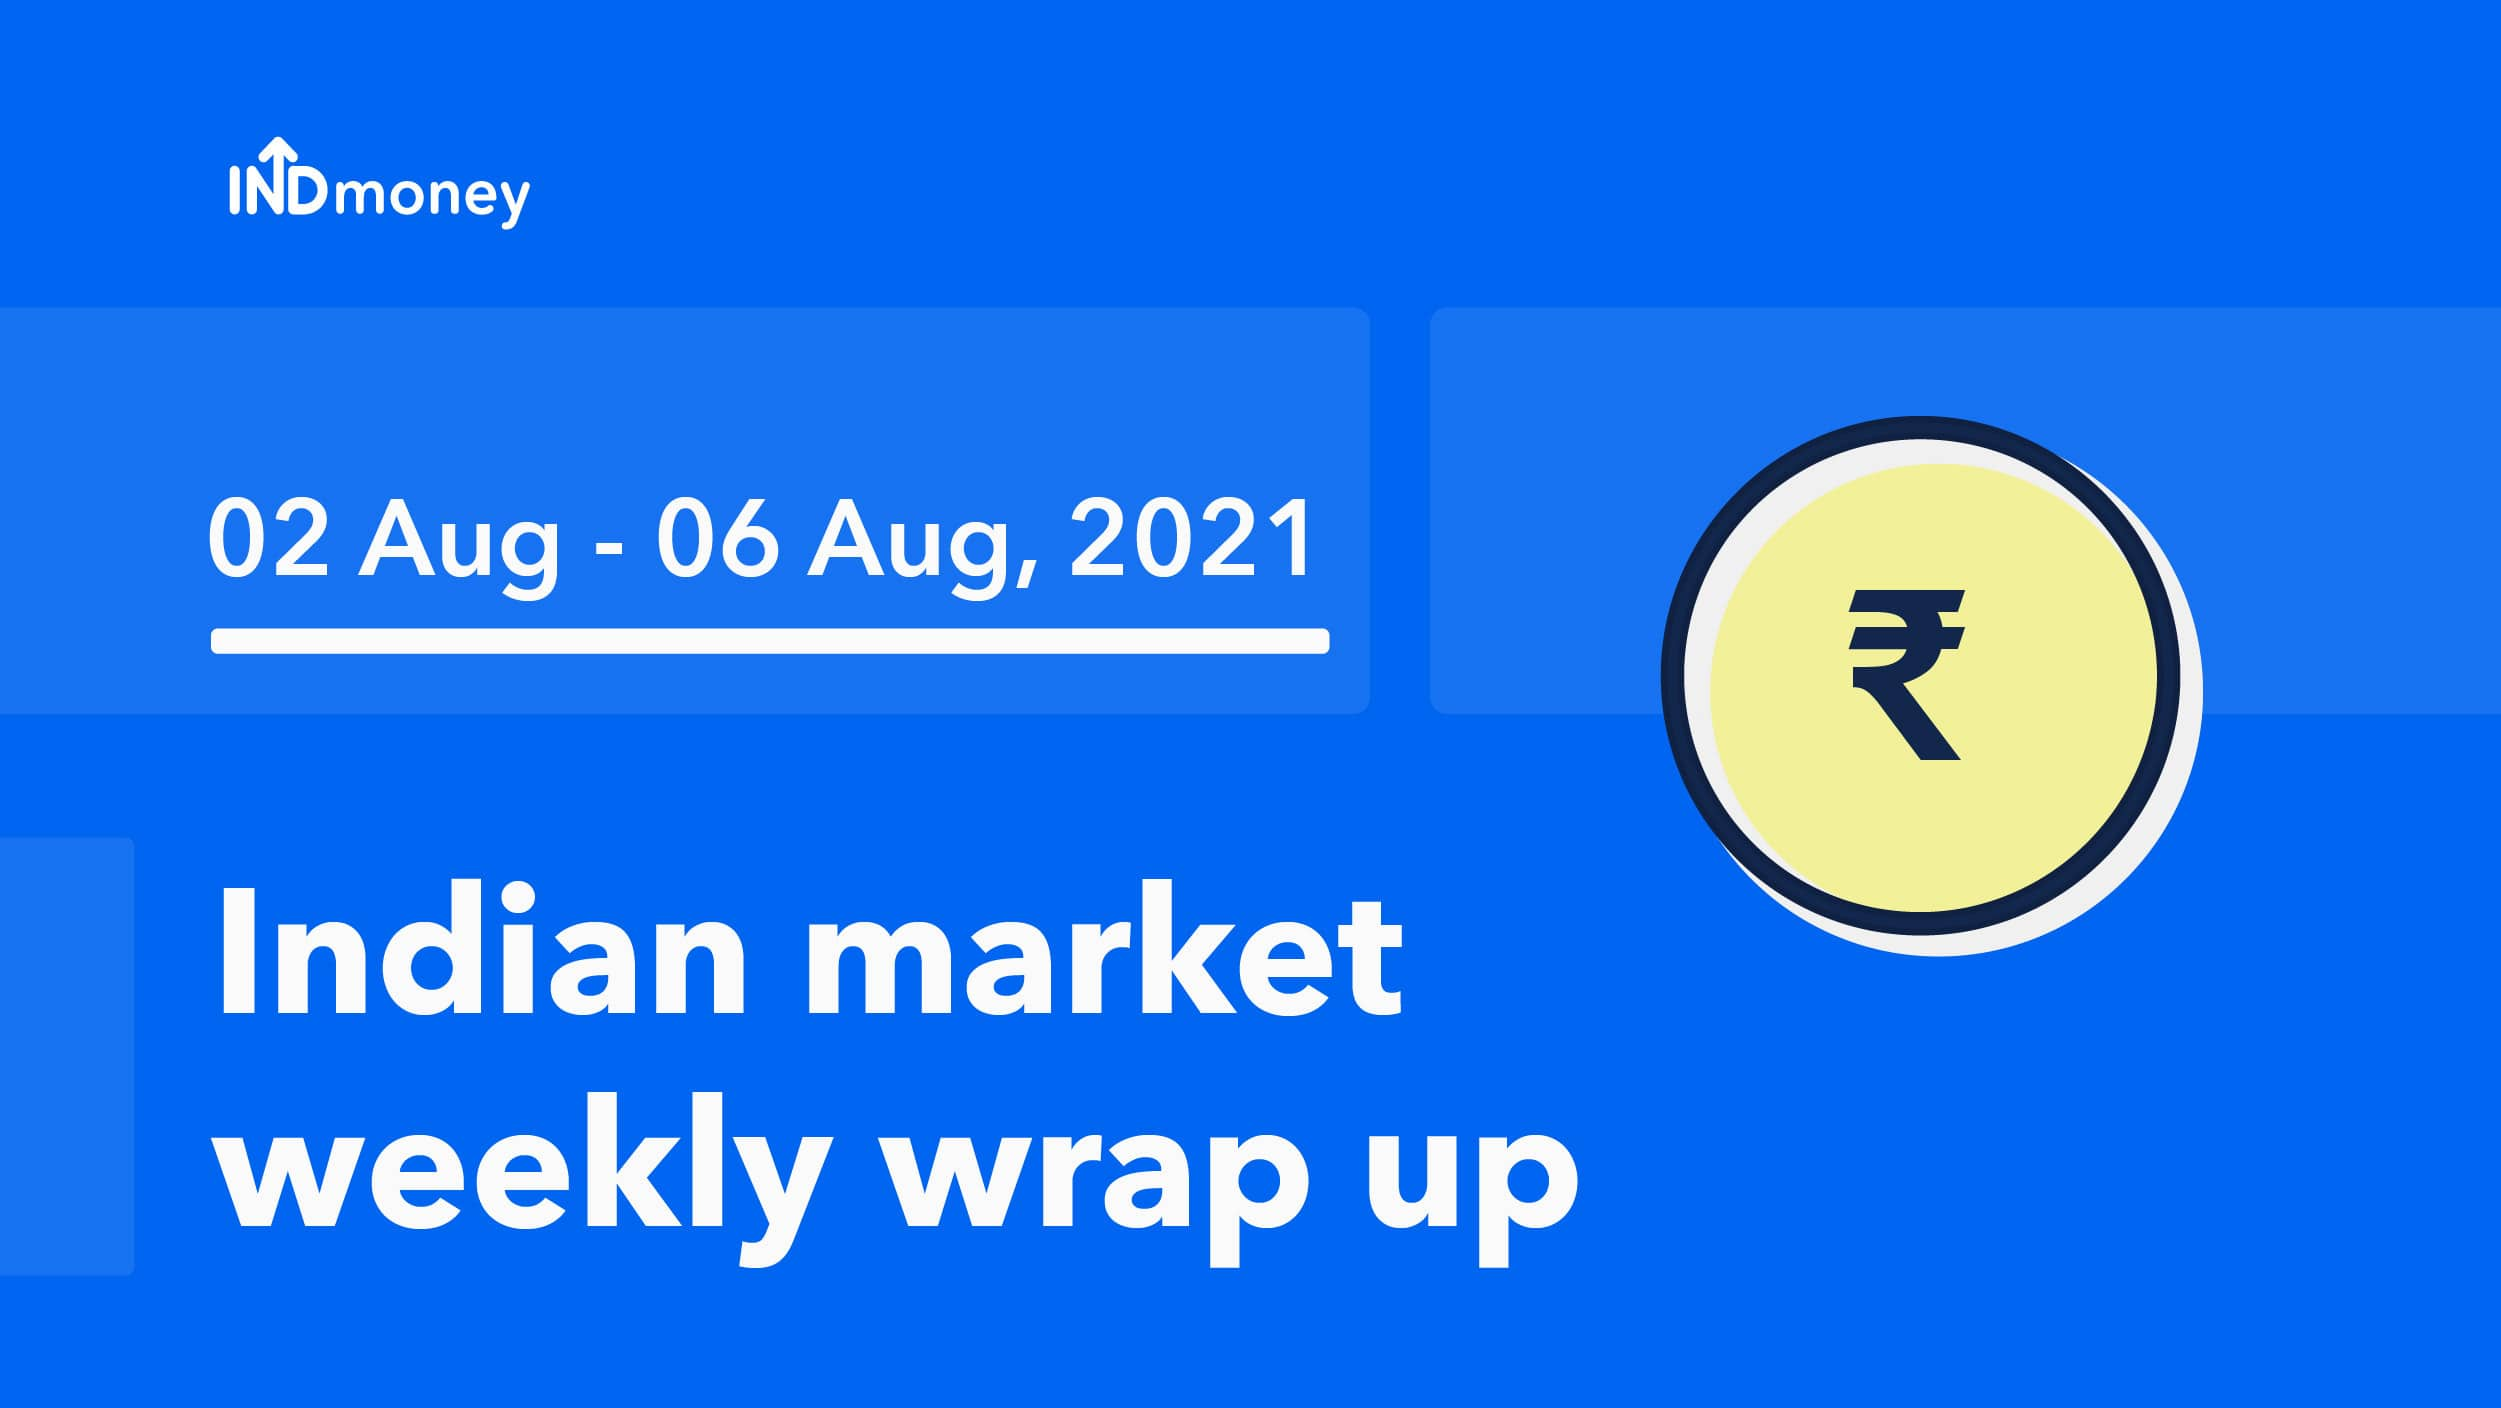 Weekly wrap: Nifty scales new high on robust earnings, decline in Covid cases